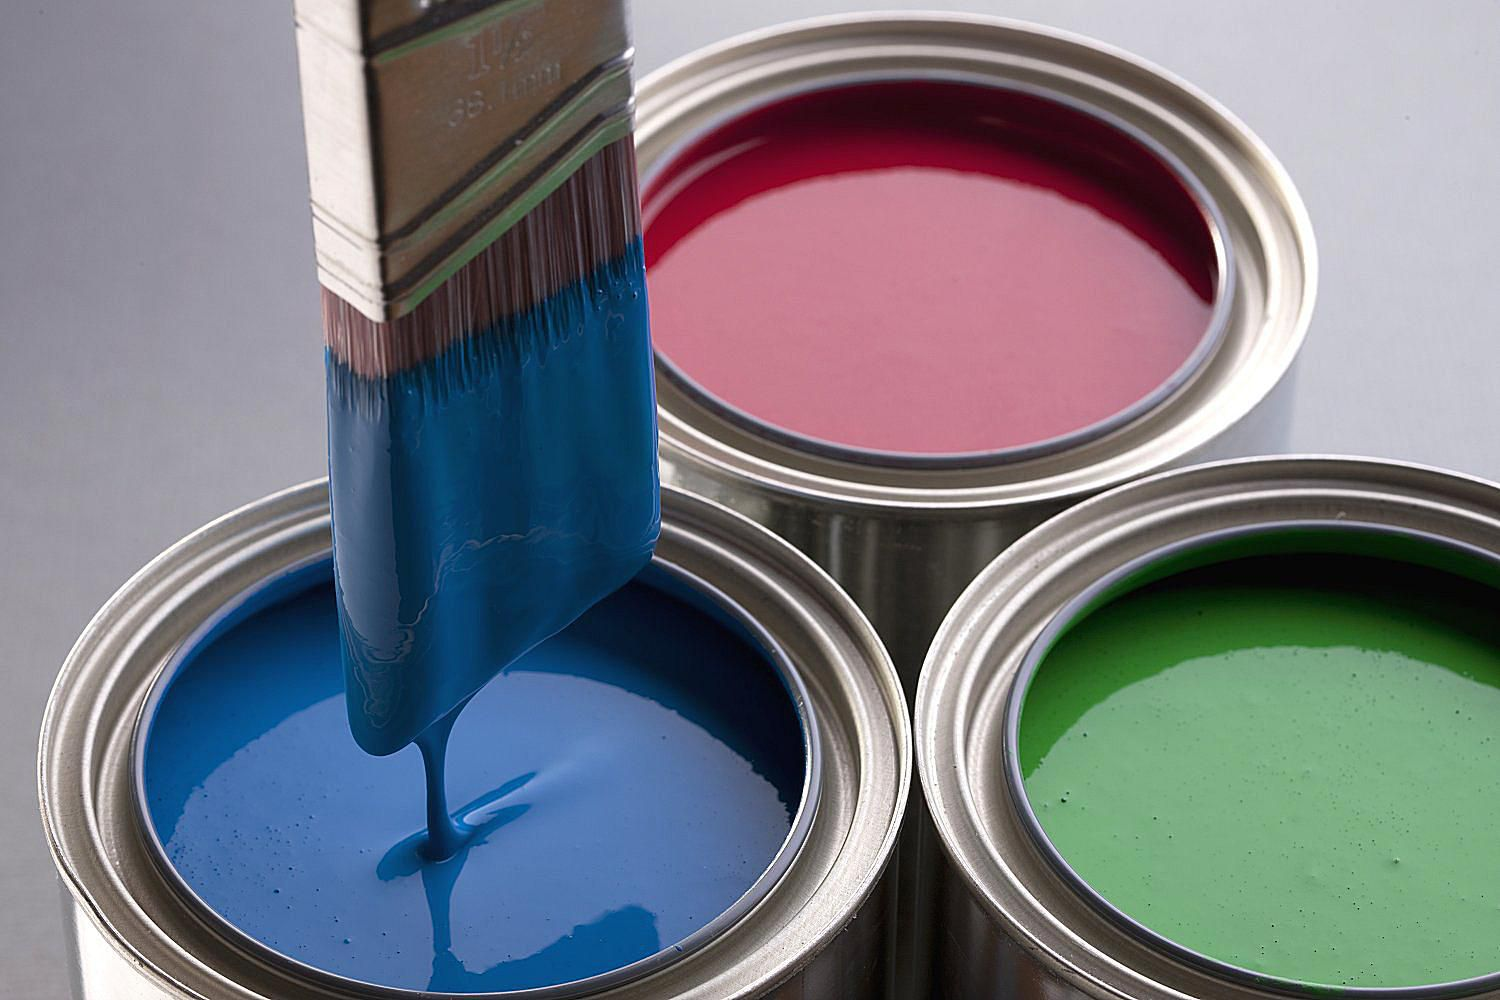 How Many Cans Of Paint To Paint X Room